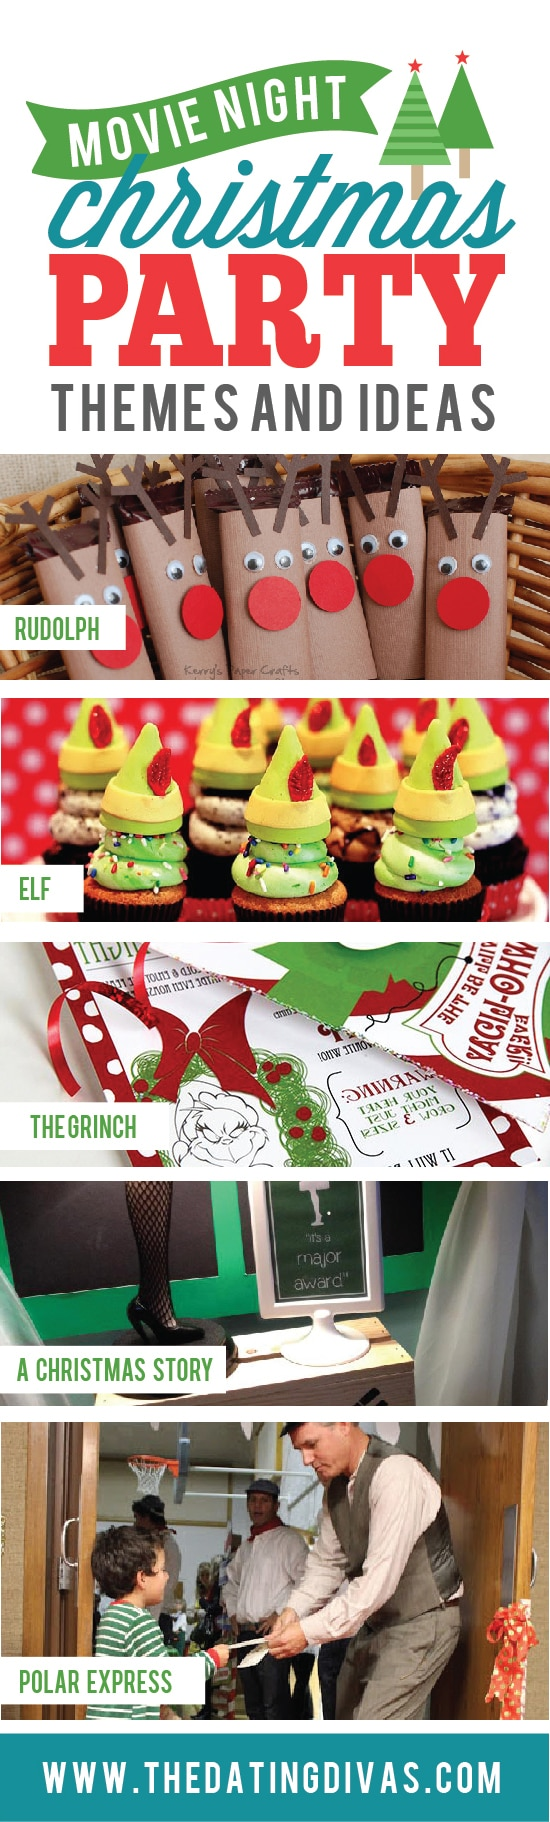 Charming Christmas Party Night Ideas Part - 14: Awesome Movie Christmas Party Themes